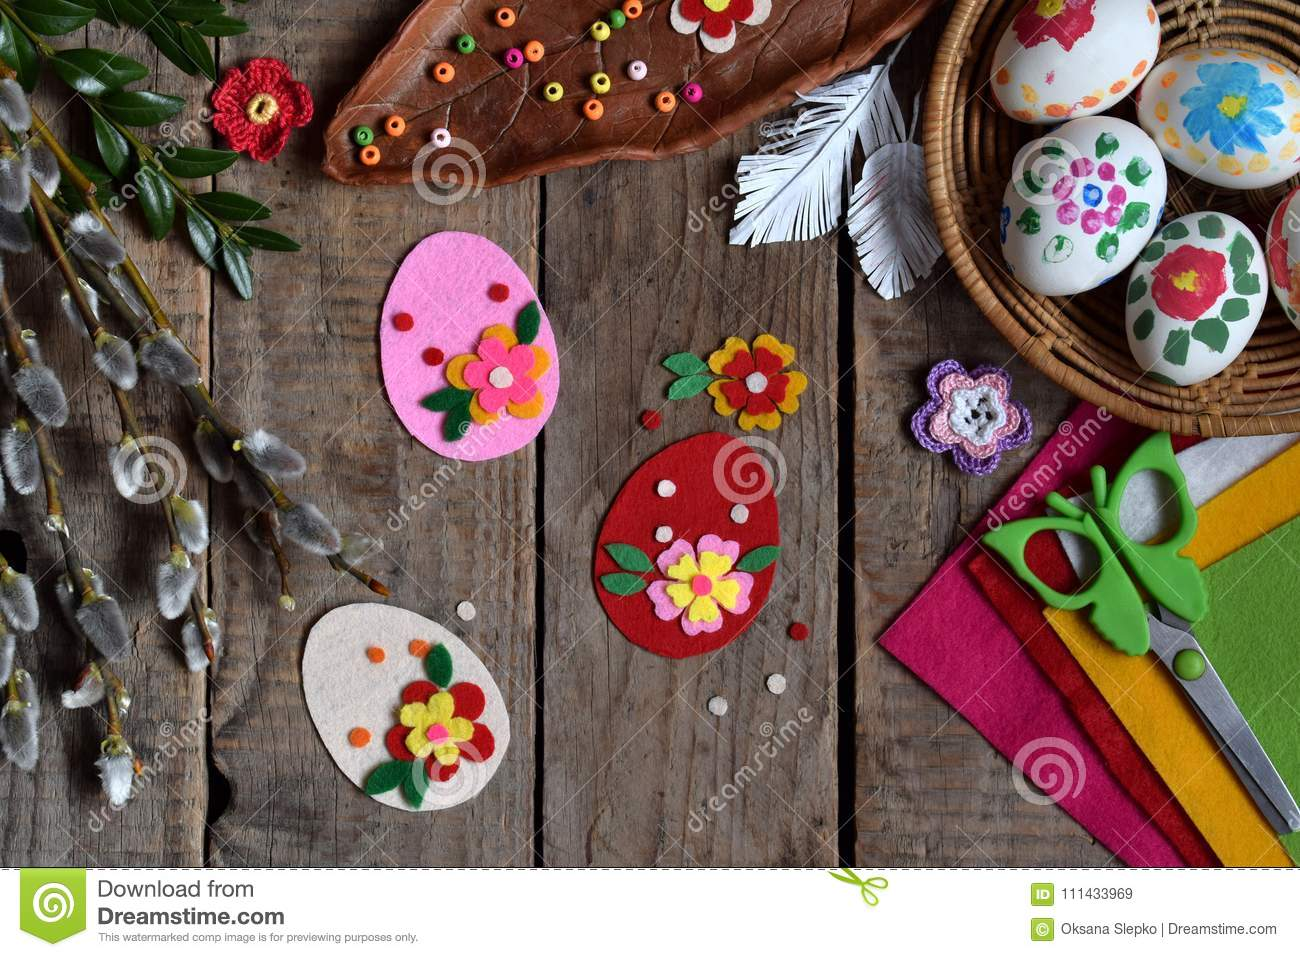 Making of handmade easter eggs from felt with your own hands. Children DIY concept. Making Easter decoration or greeting card